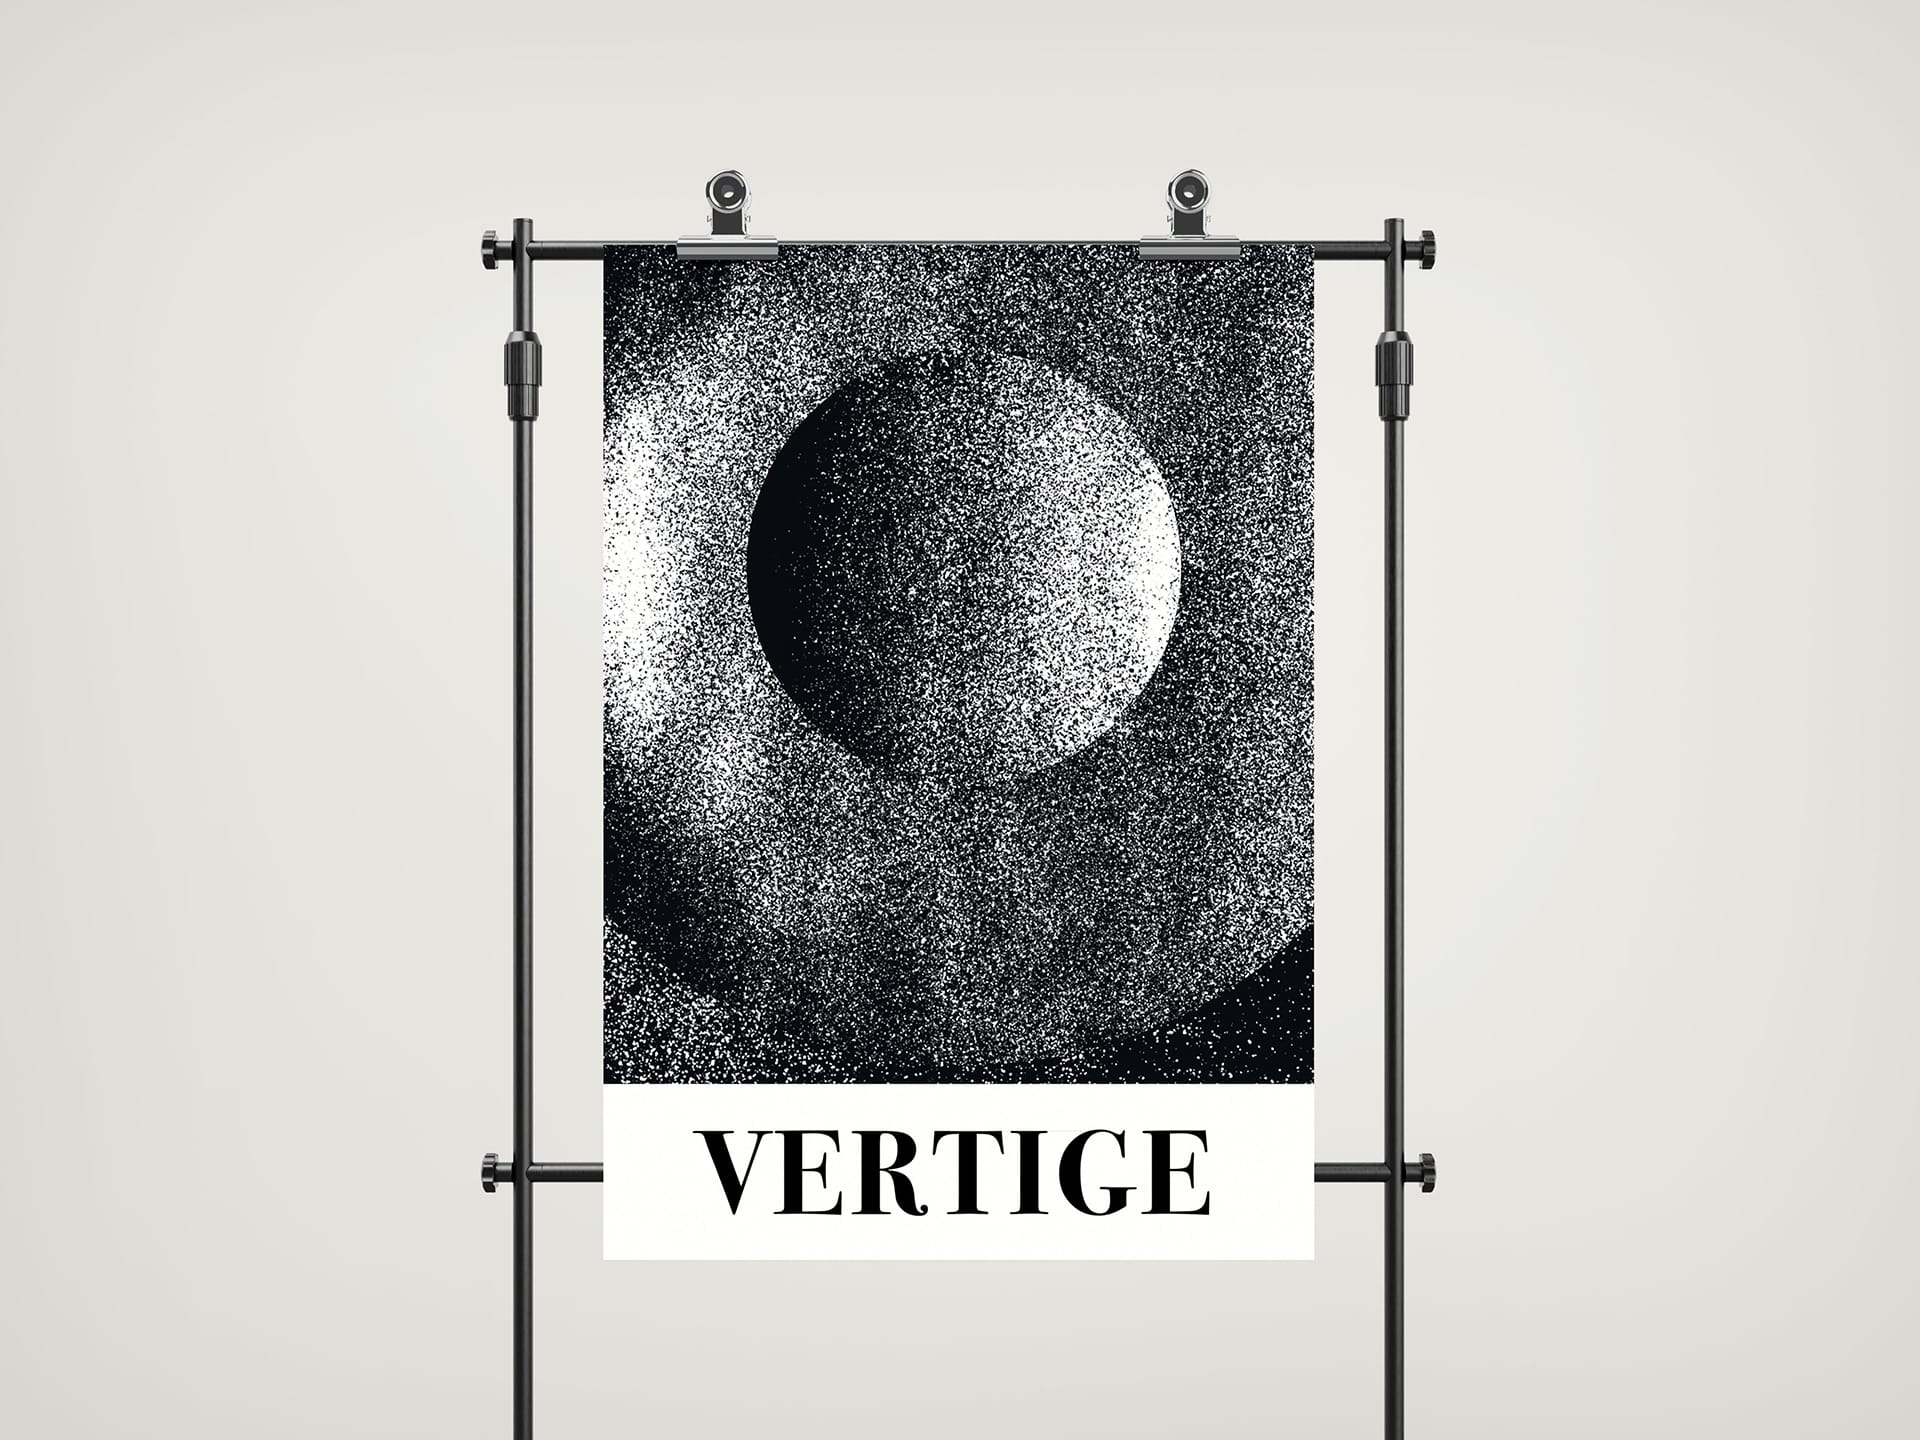 poster-vertige-1-medium